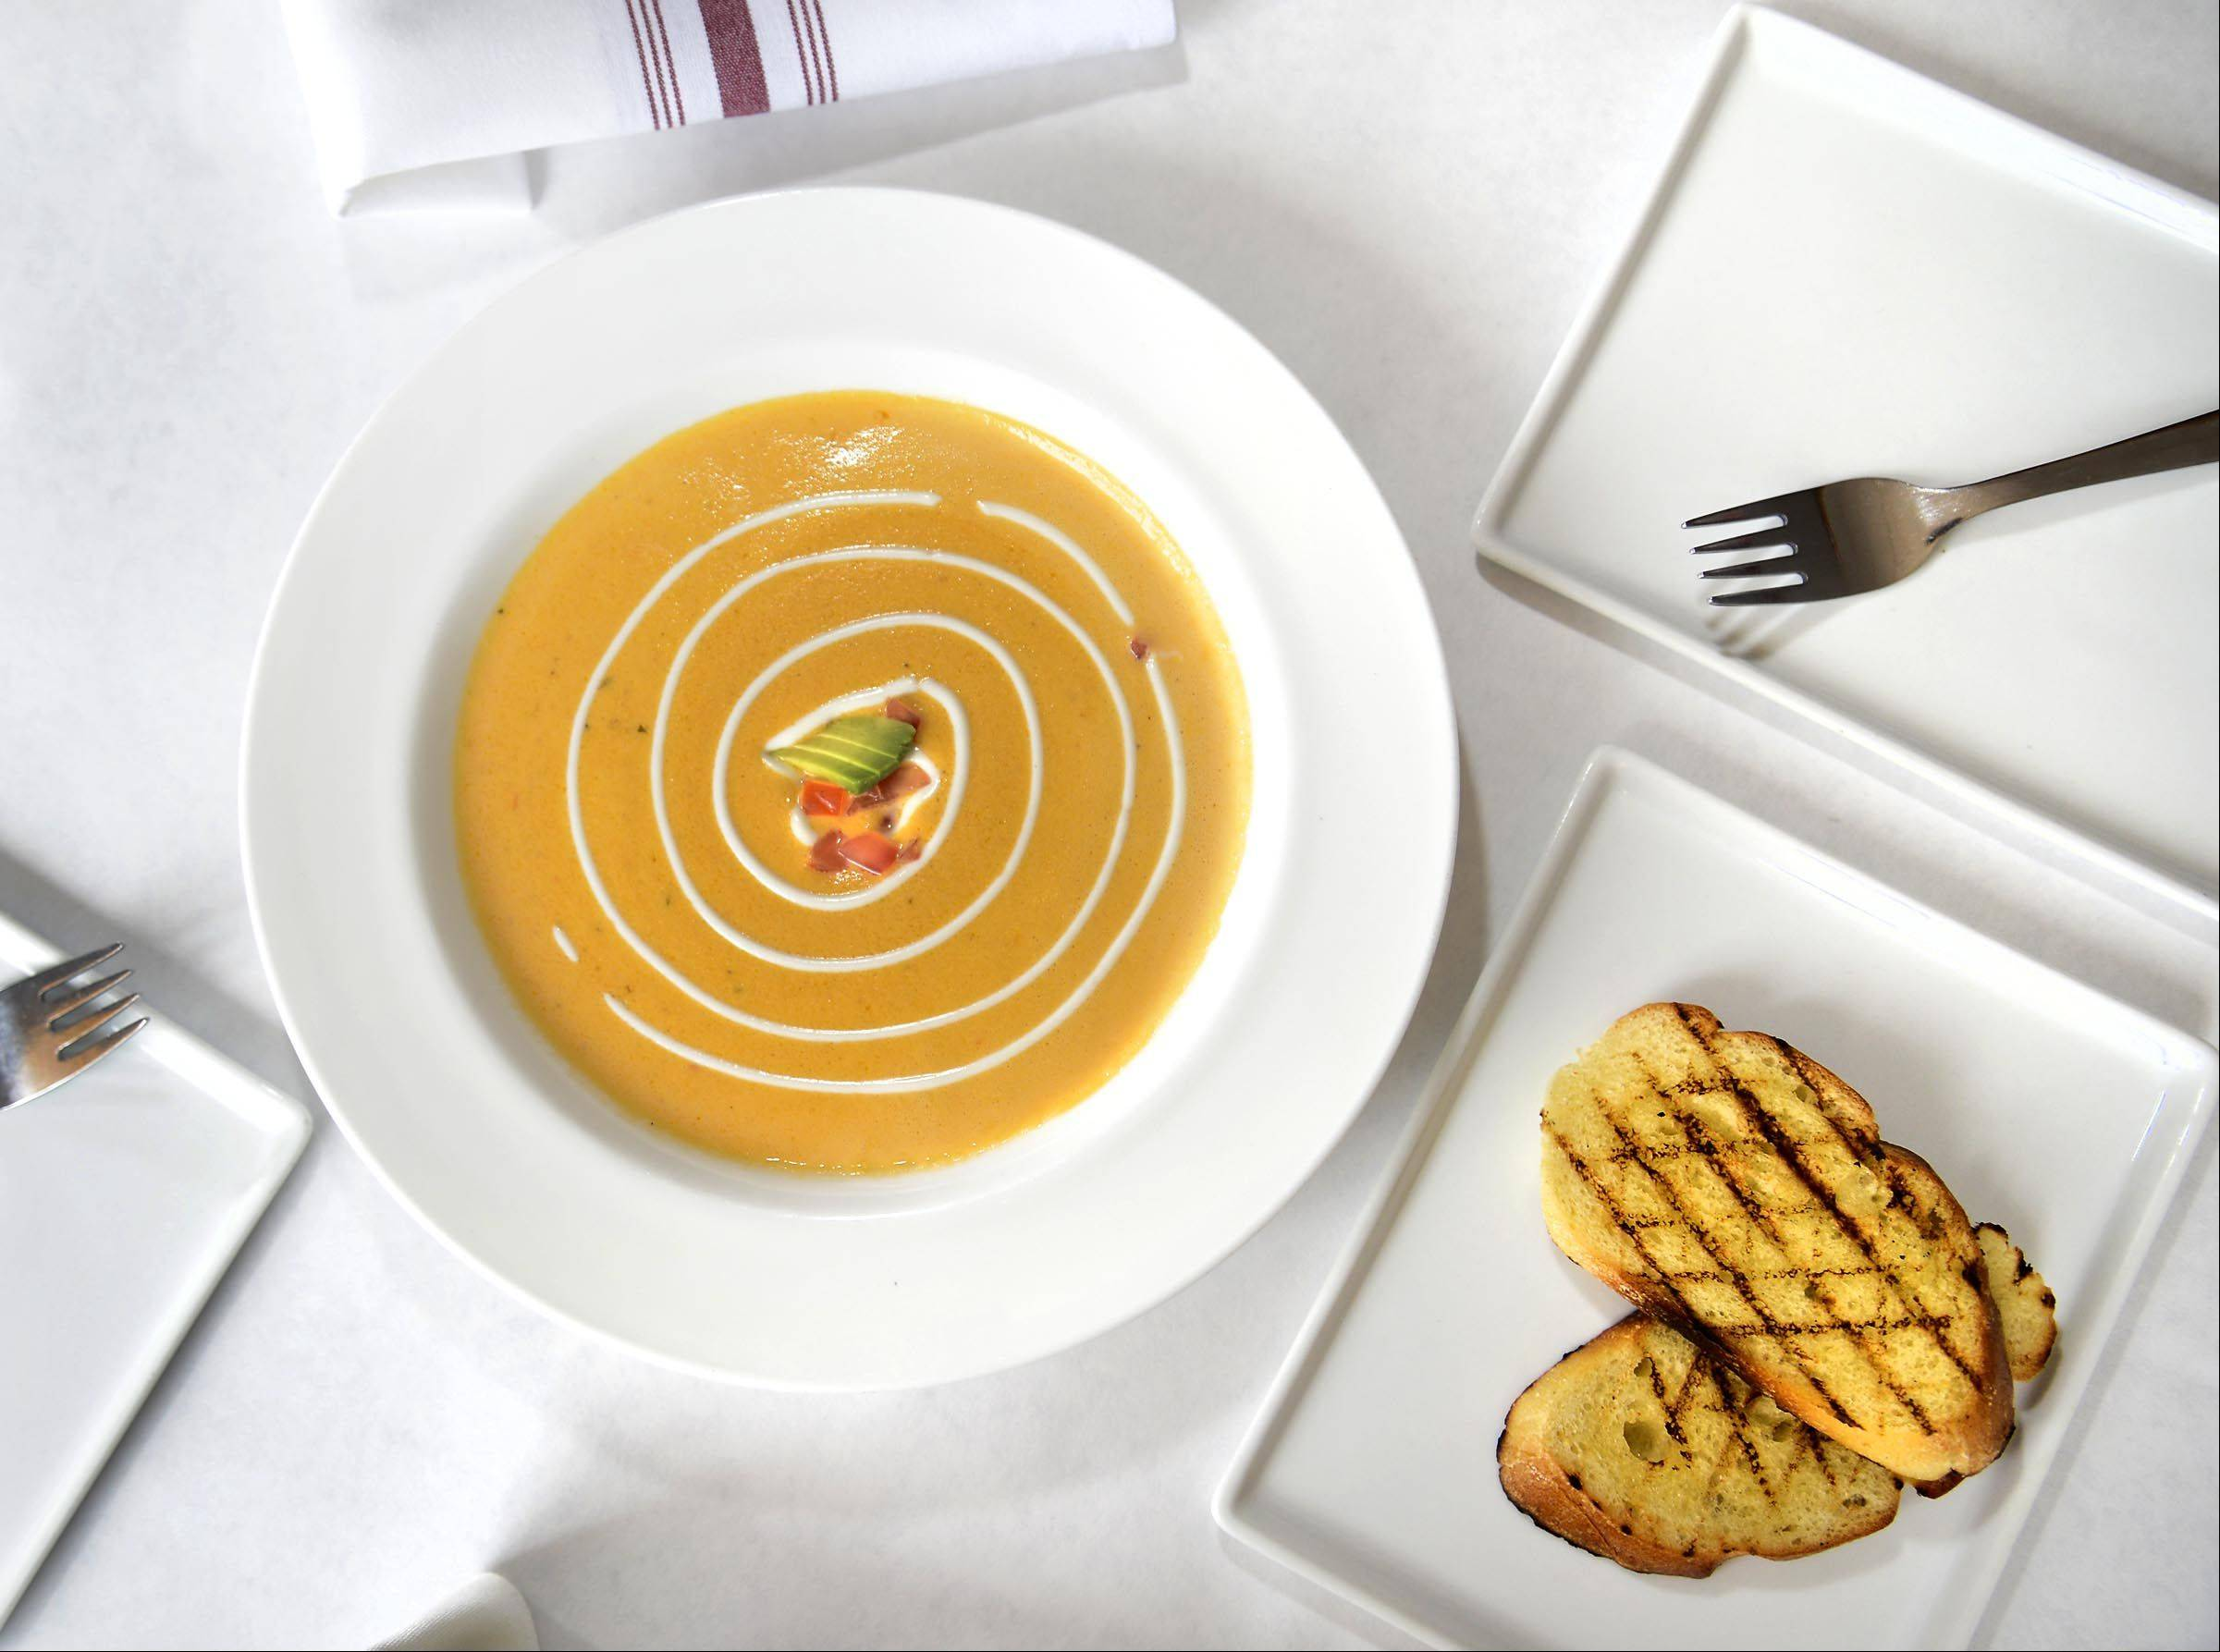 Roasting peppers tones down their heat and makes for a boldly flavored soup at Altiro in Geneva.